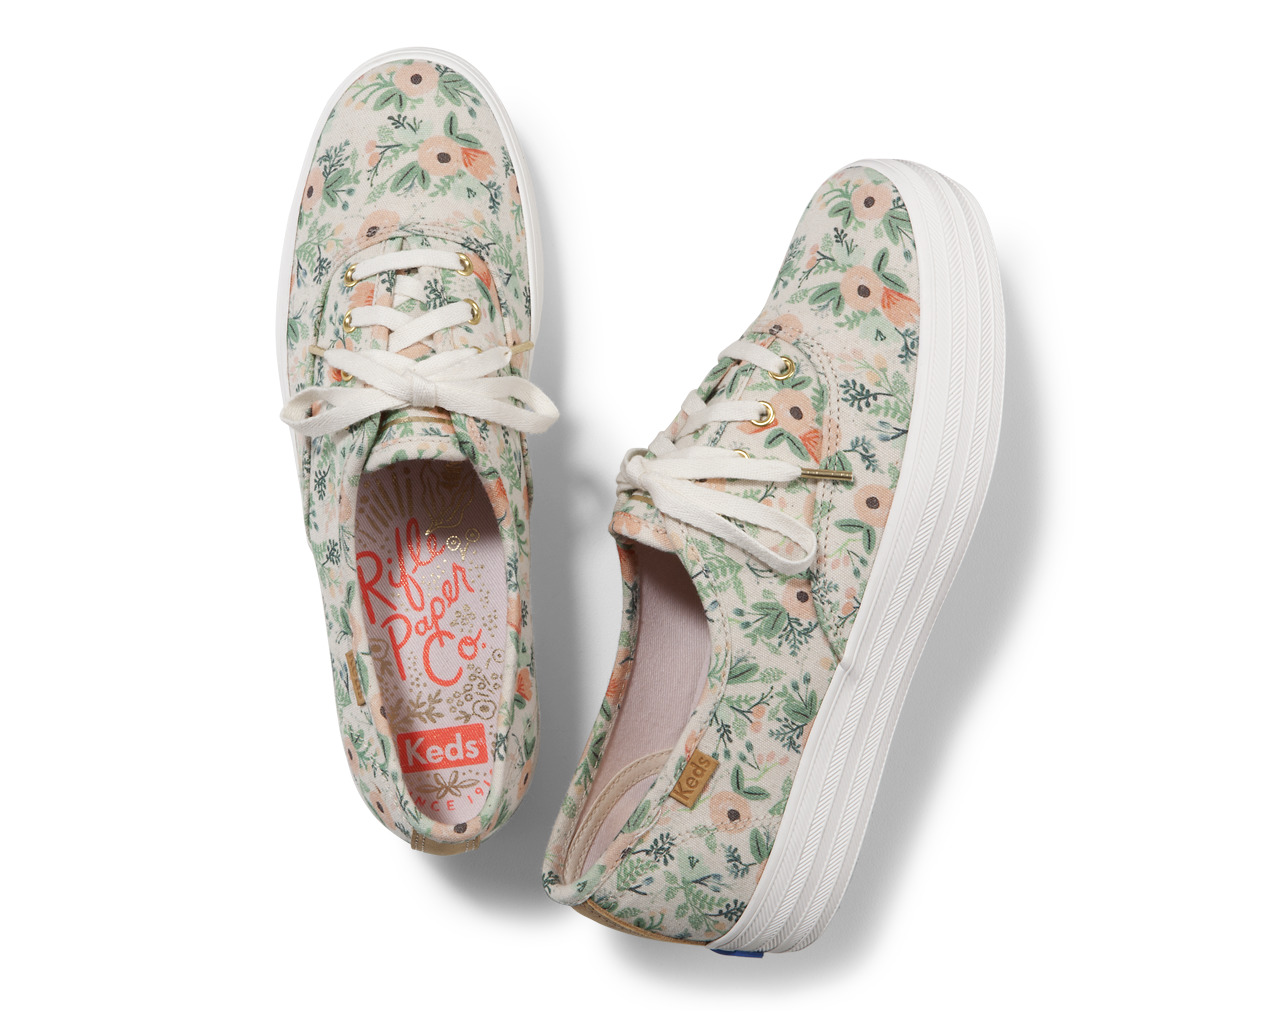 1be48afc94f THE KEDS x RIFLE PAPER CO. COLLECTION - MASSES